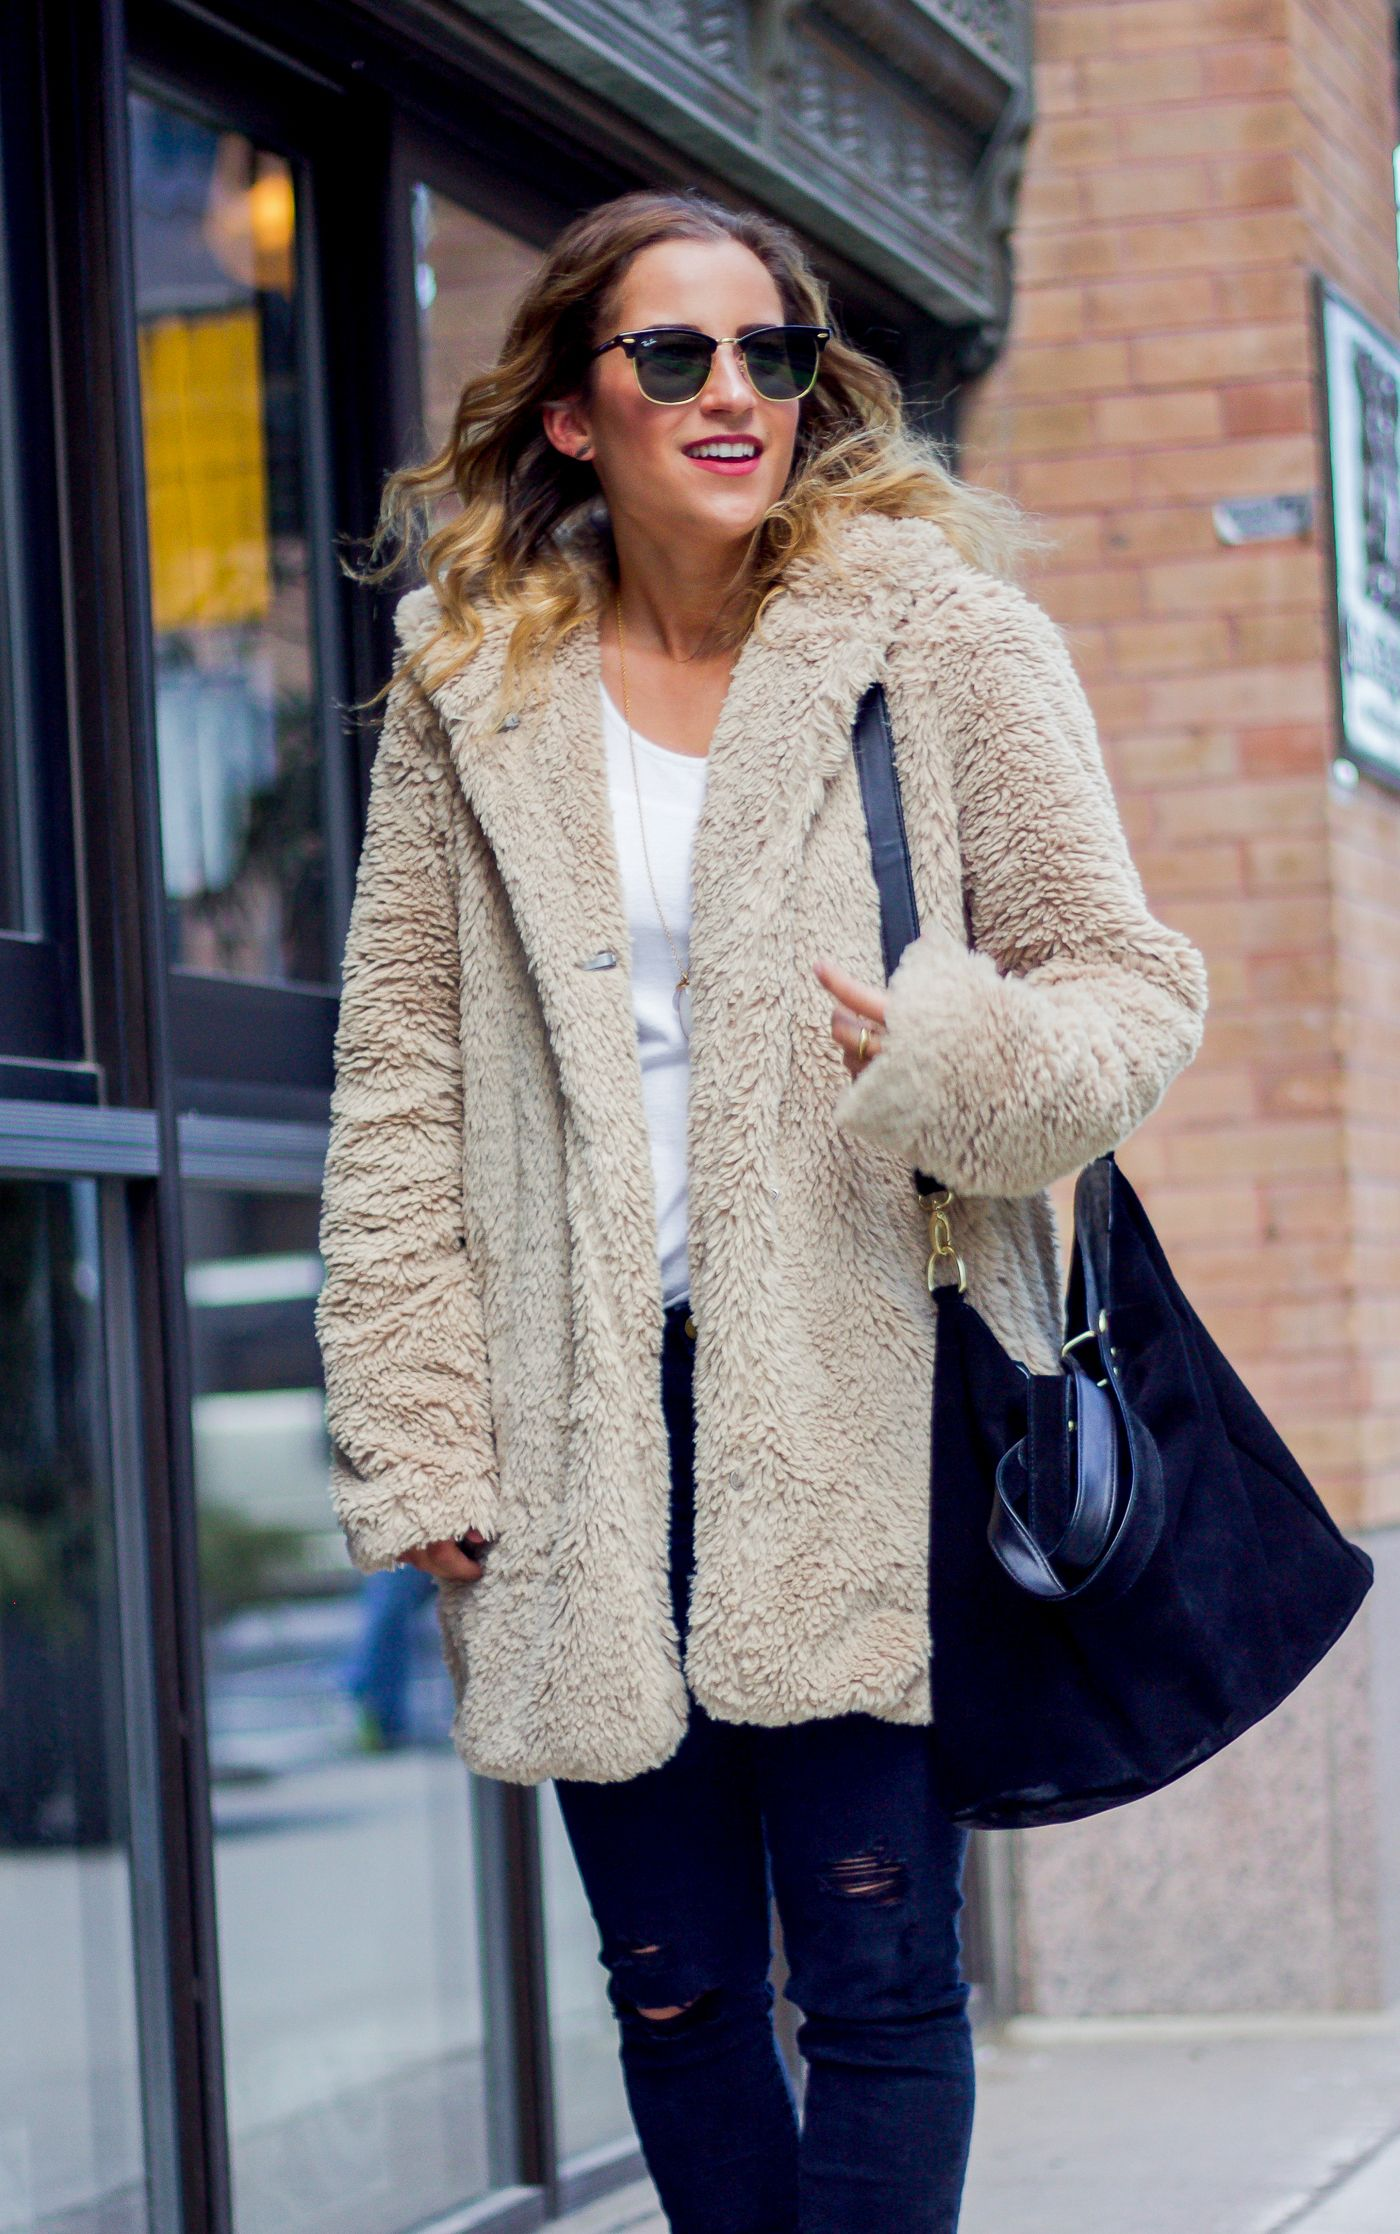 Cozy Sherpa Coat and ECCO Soft 3 High Top Sneakers | Sherpa